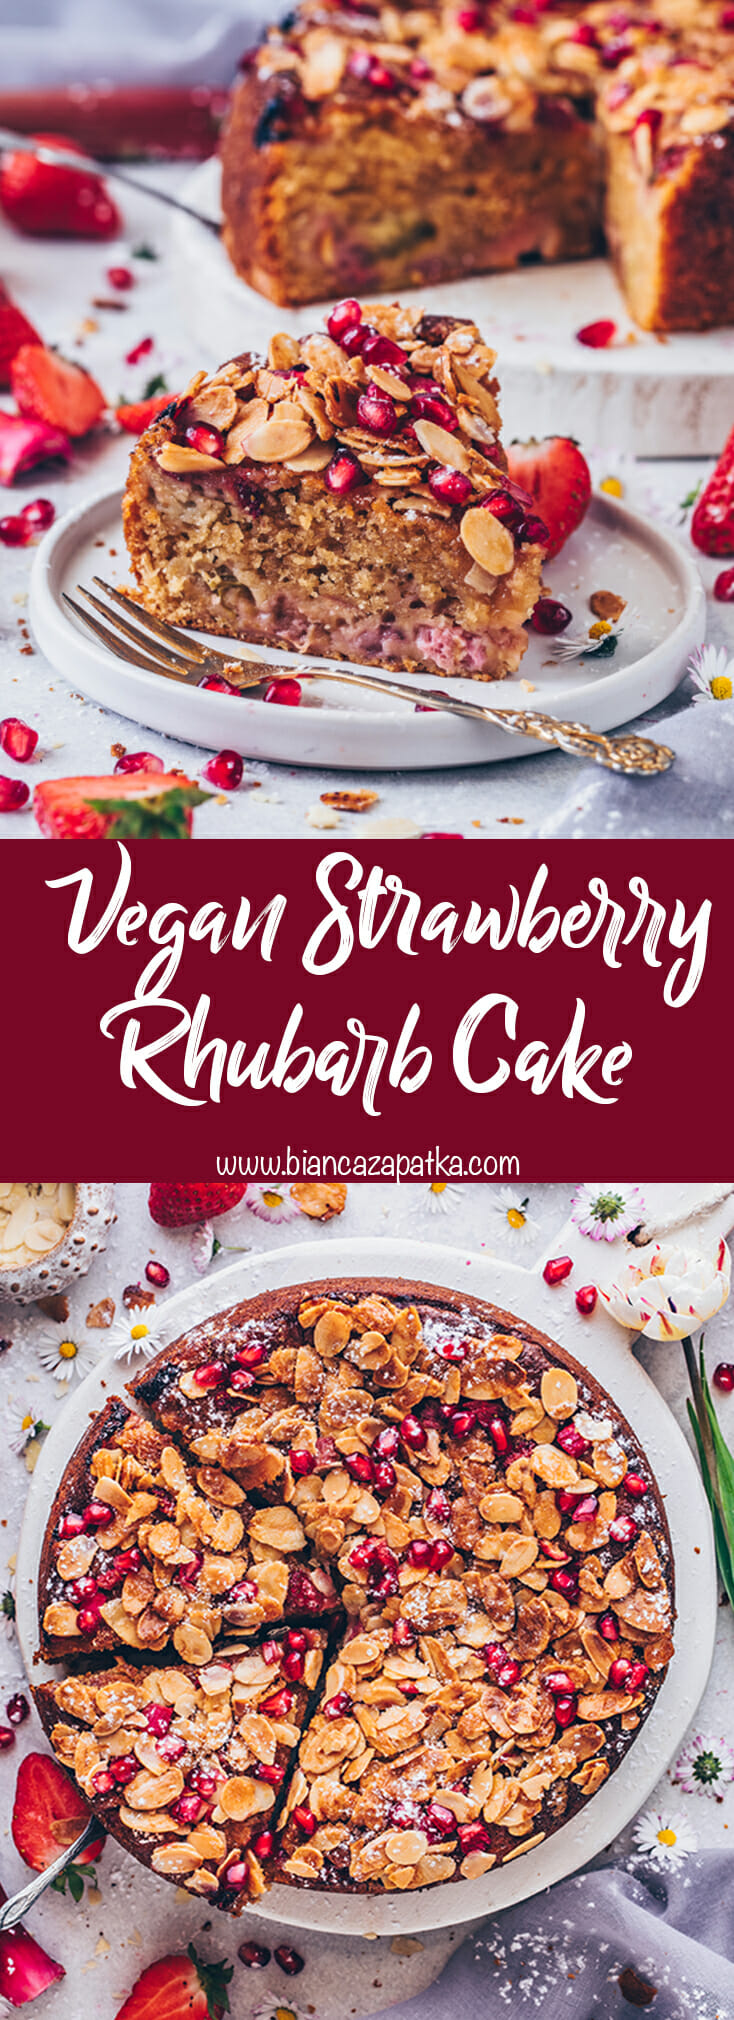 Strawberry Rhubarb Cake with Almonds (food photography)